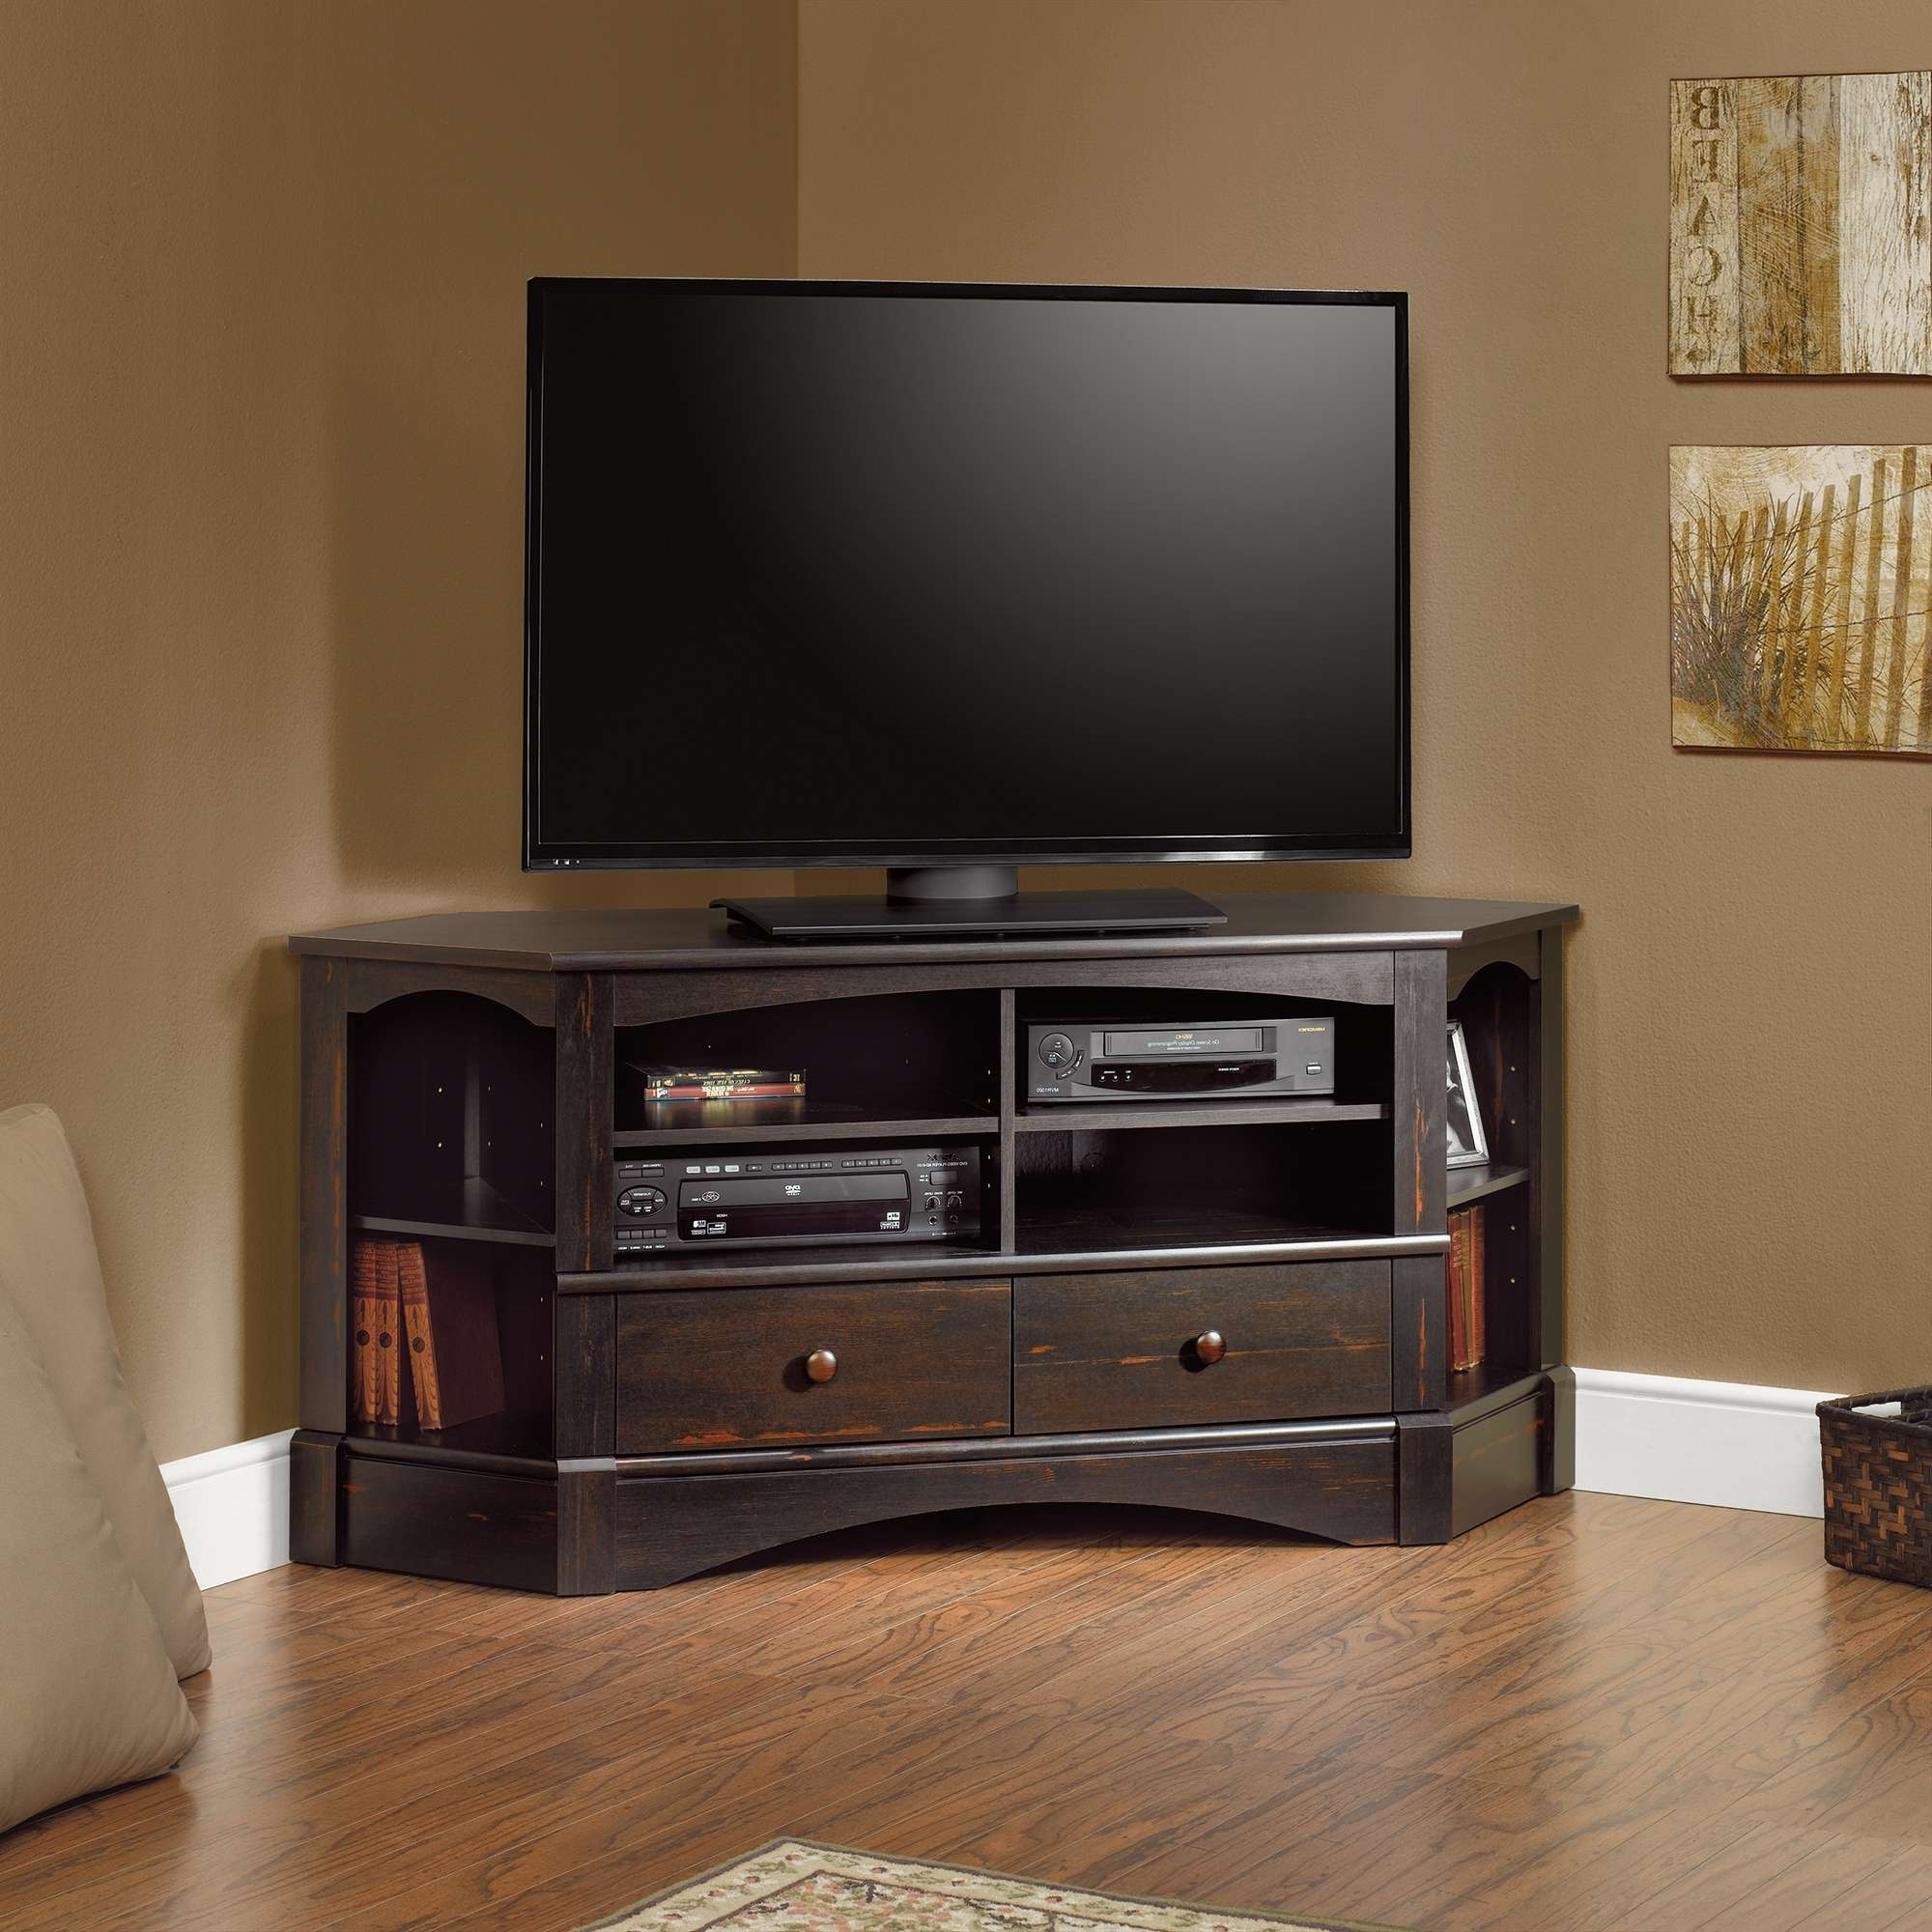 Harbor View   Corner Entertainment Credenza   402902   Sauder With Corner Tv Cabinets (View 10 of 20)